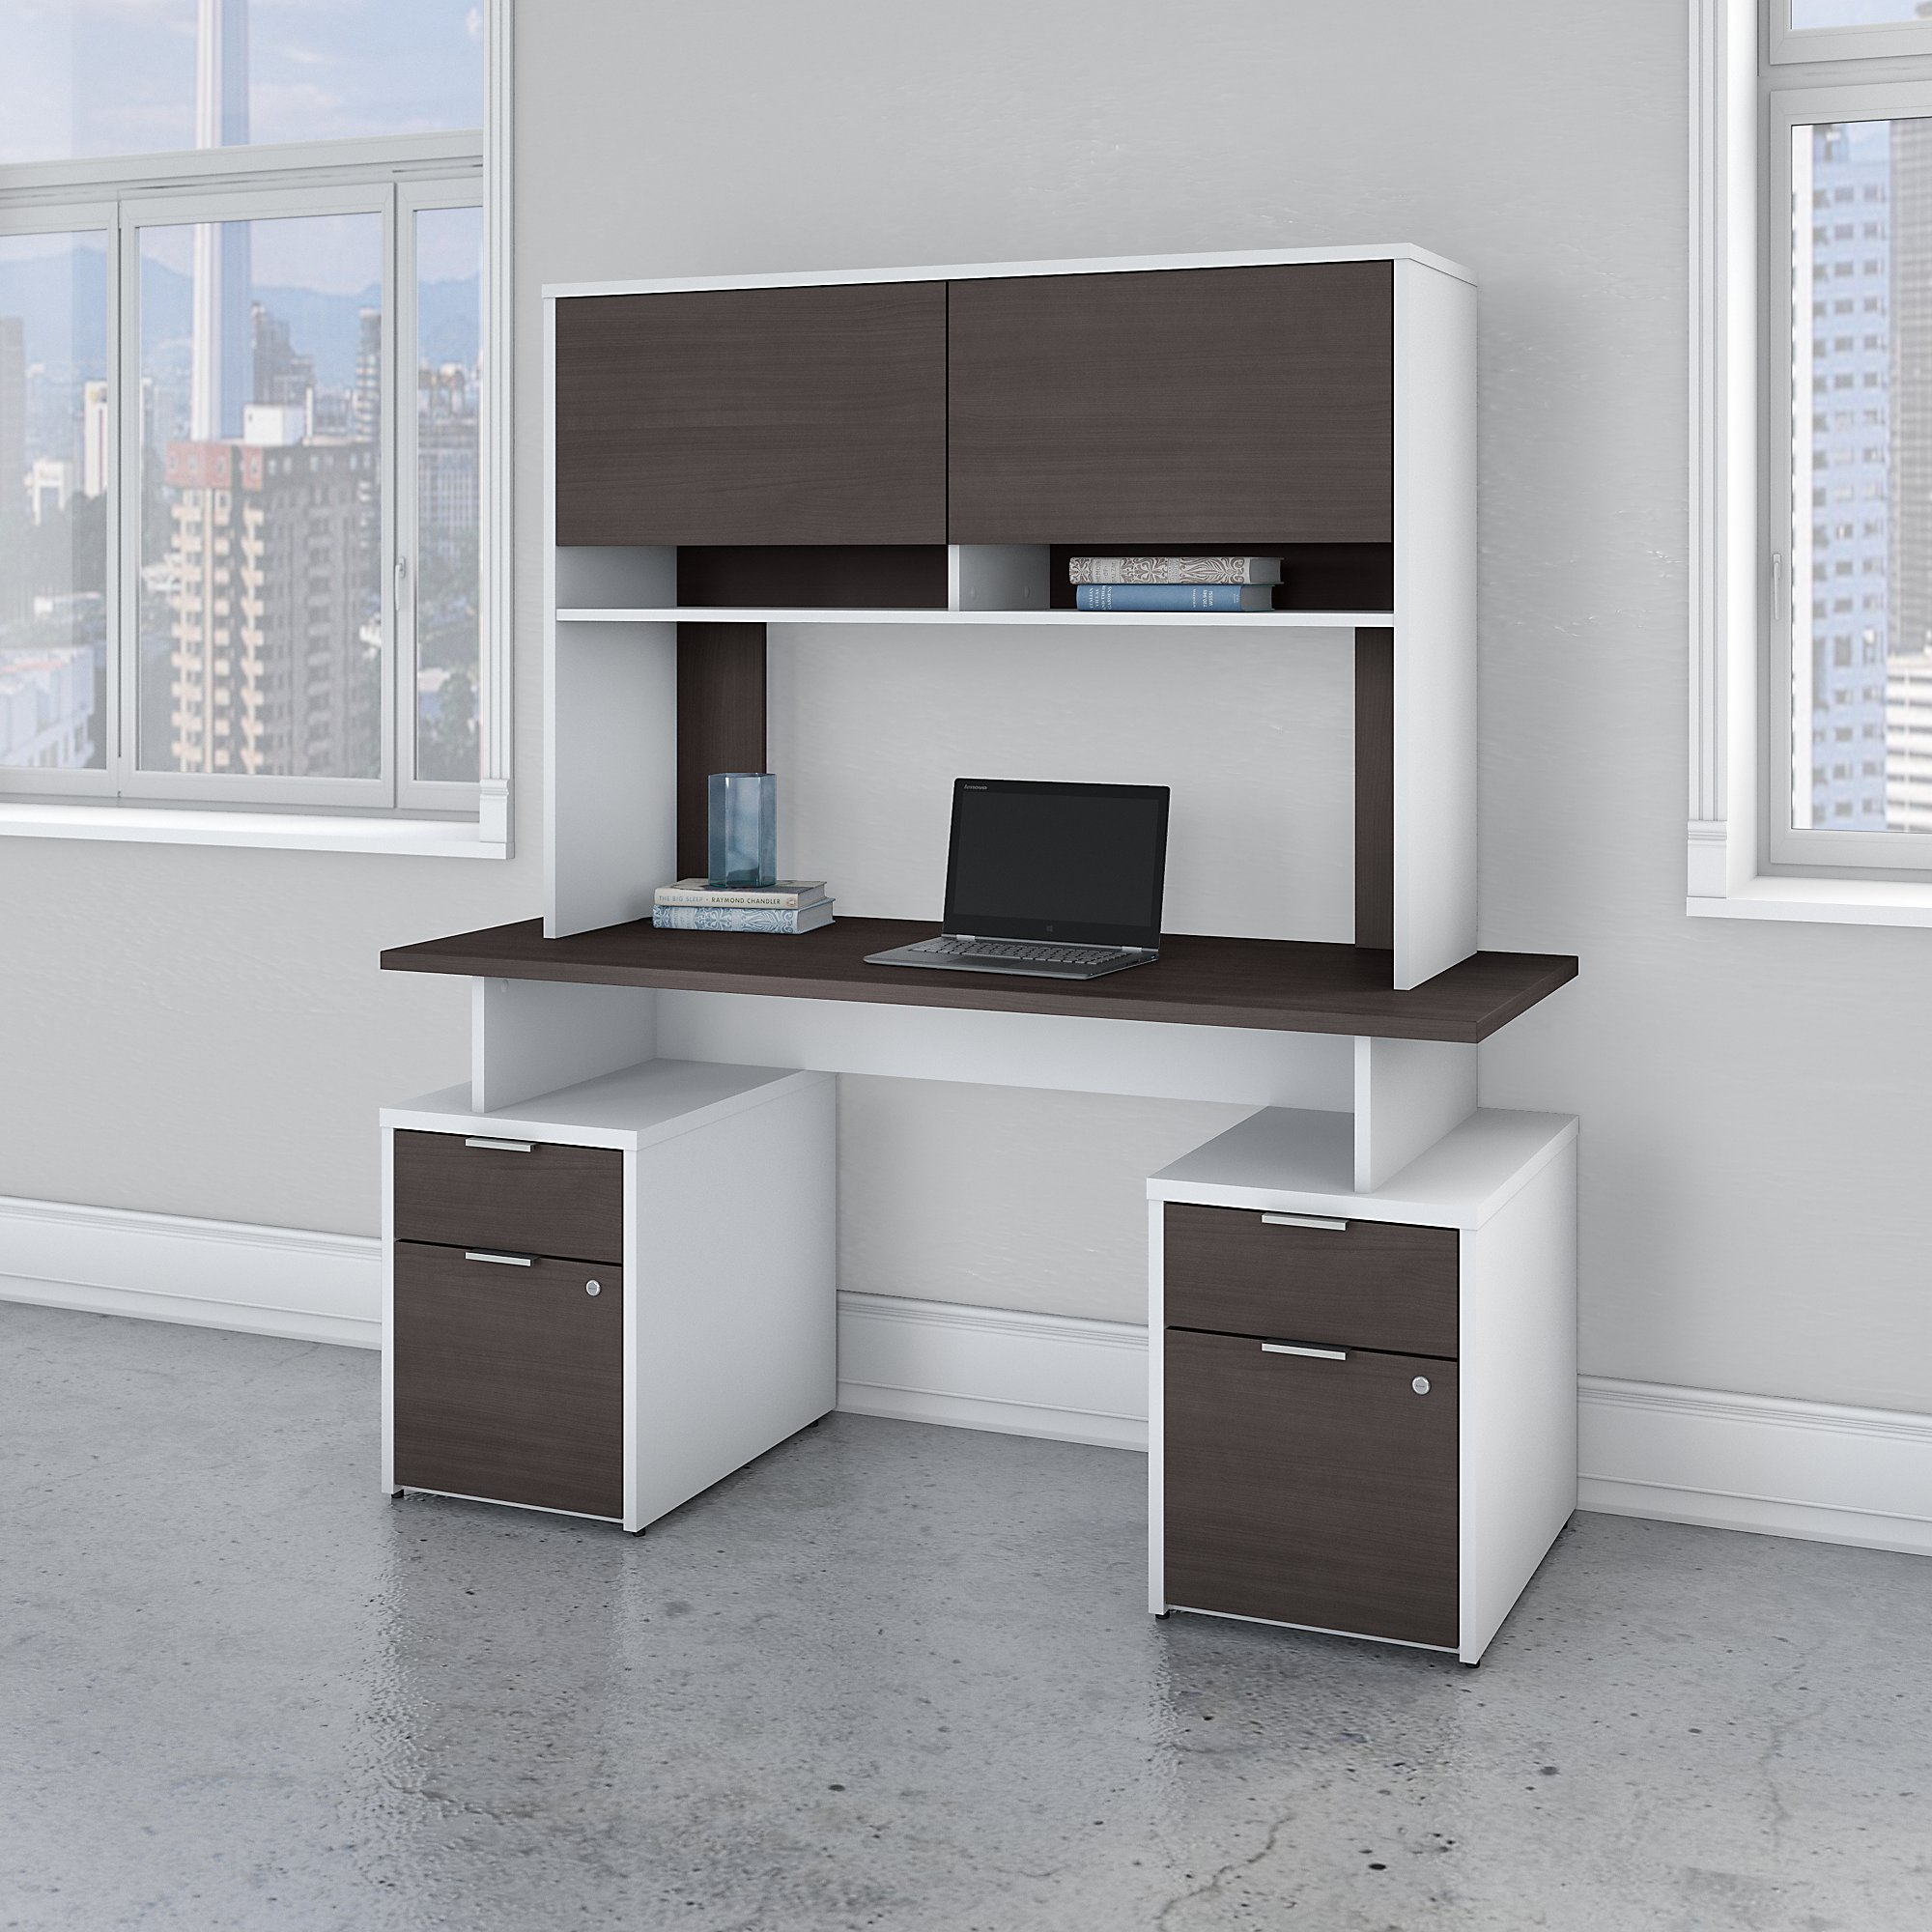 jamestown storm gray and white double pedestal desk with hutch